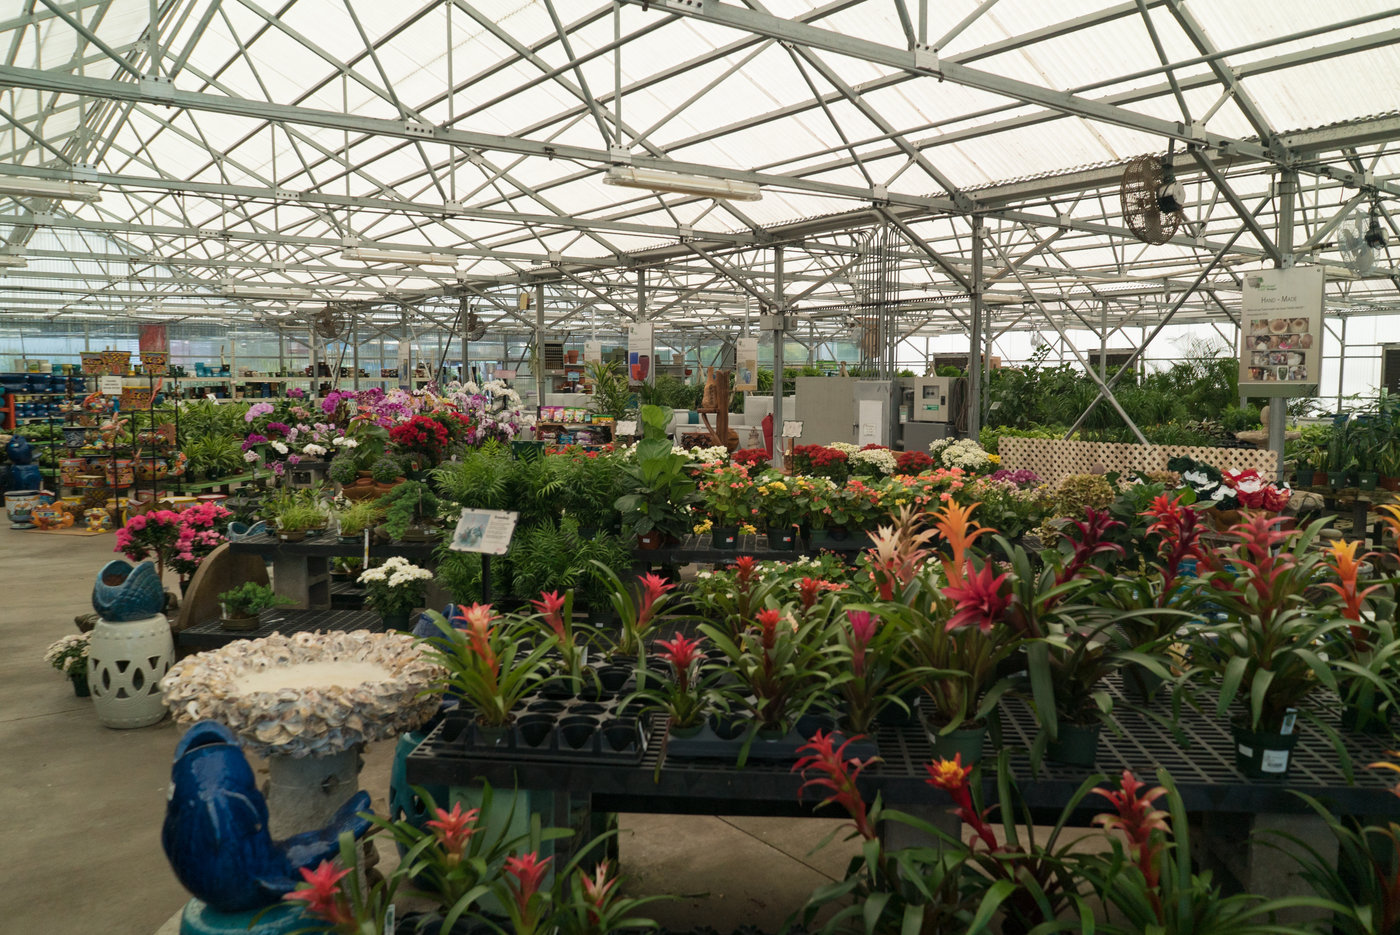 Large garden centers in their two largest stores help drive traffic.